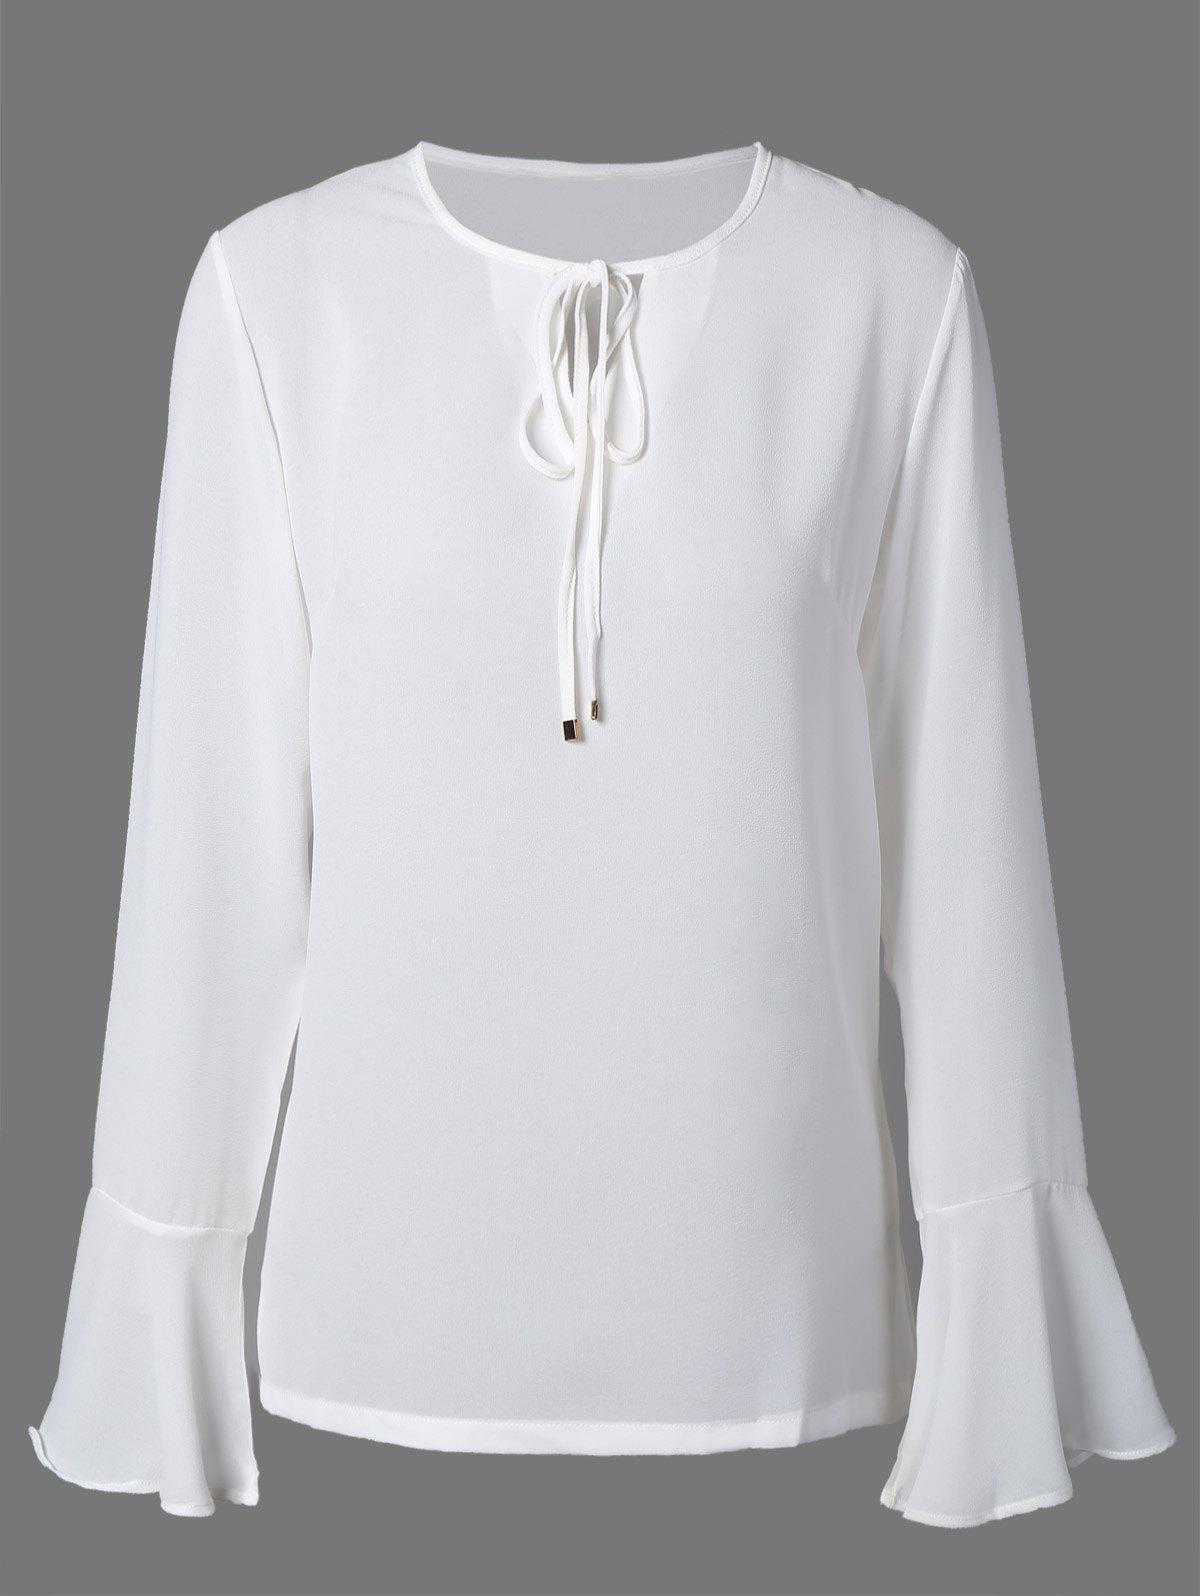 Plus Size Tie Front Chiffon Flare Sleeve Blouse inc new bright white women s size small s tie front button up blouse $59 461